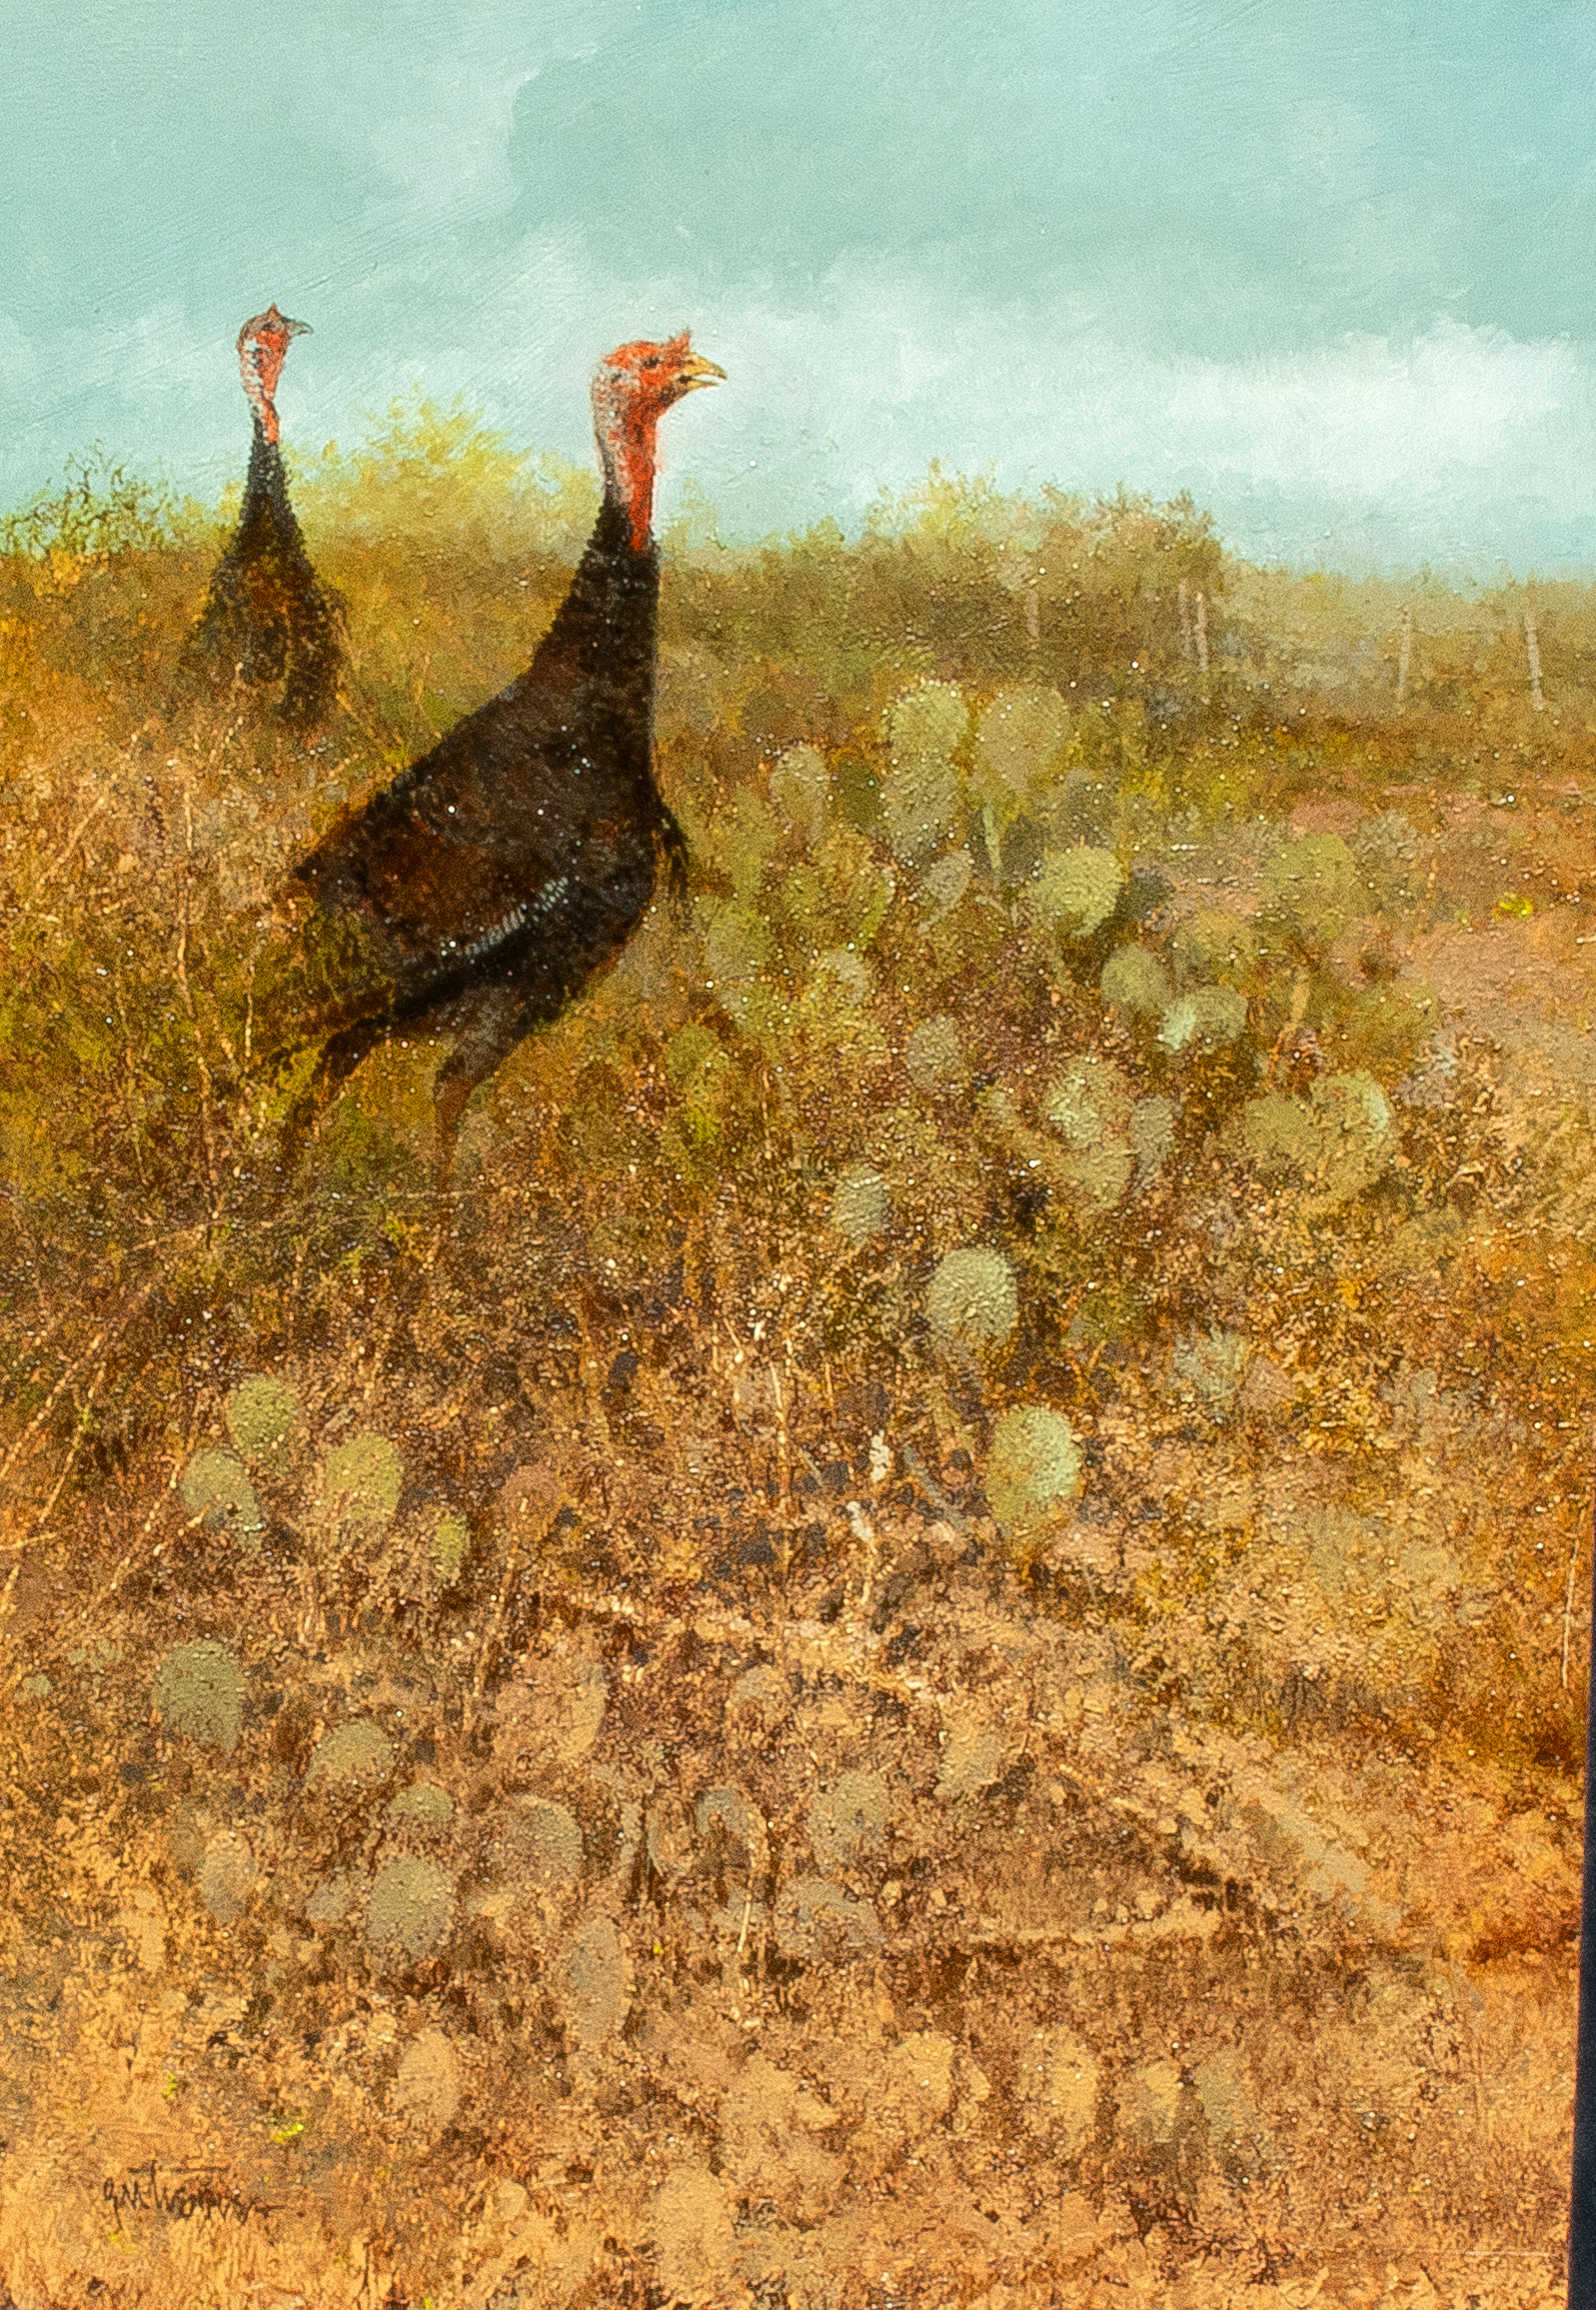 South Texas Turkeys